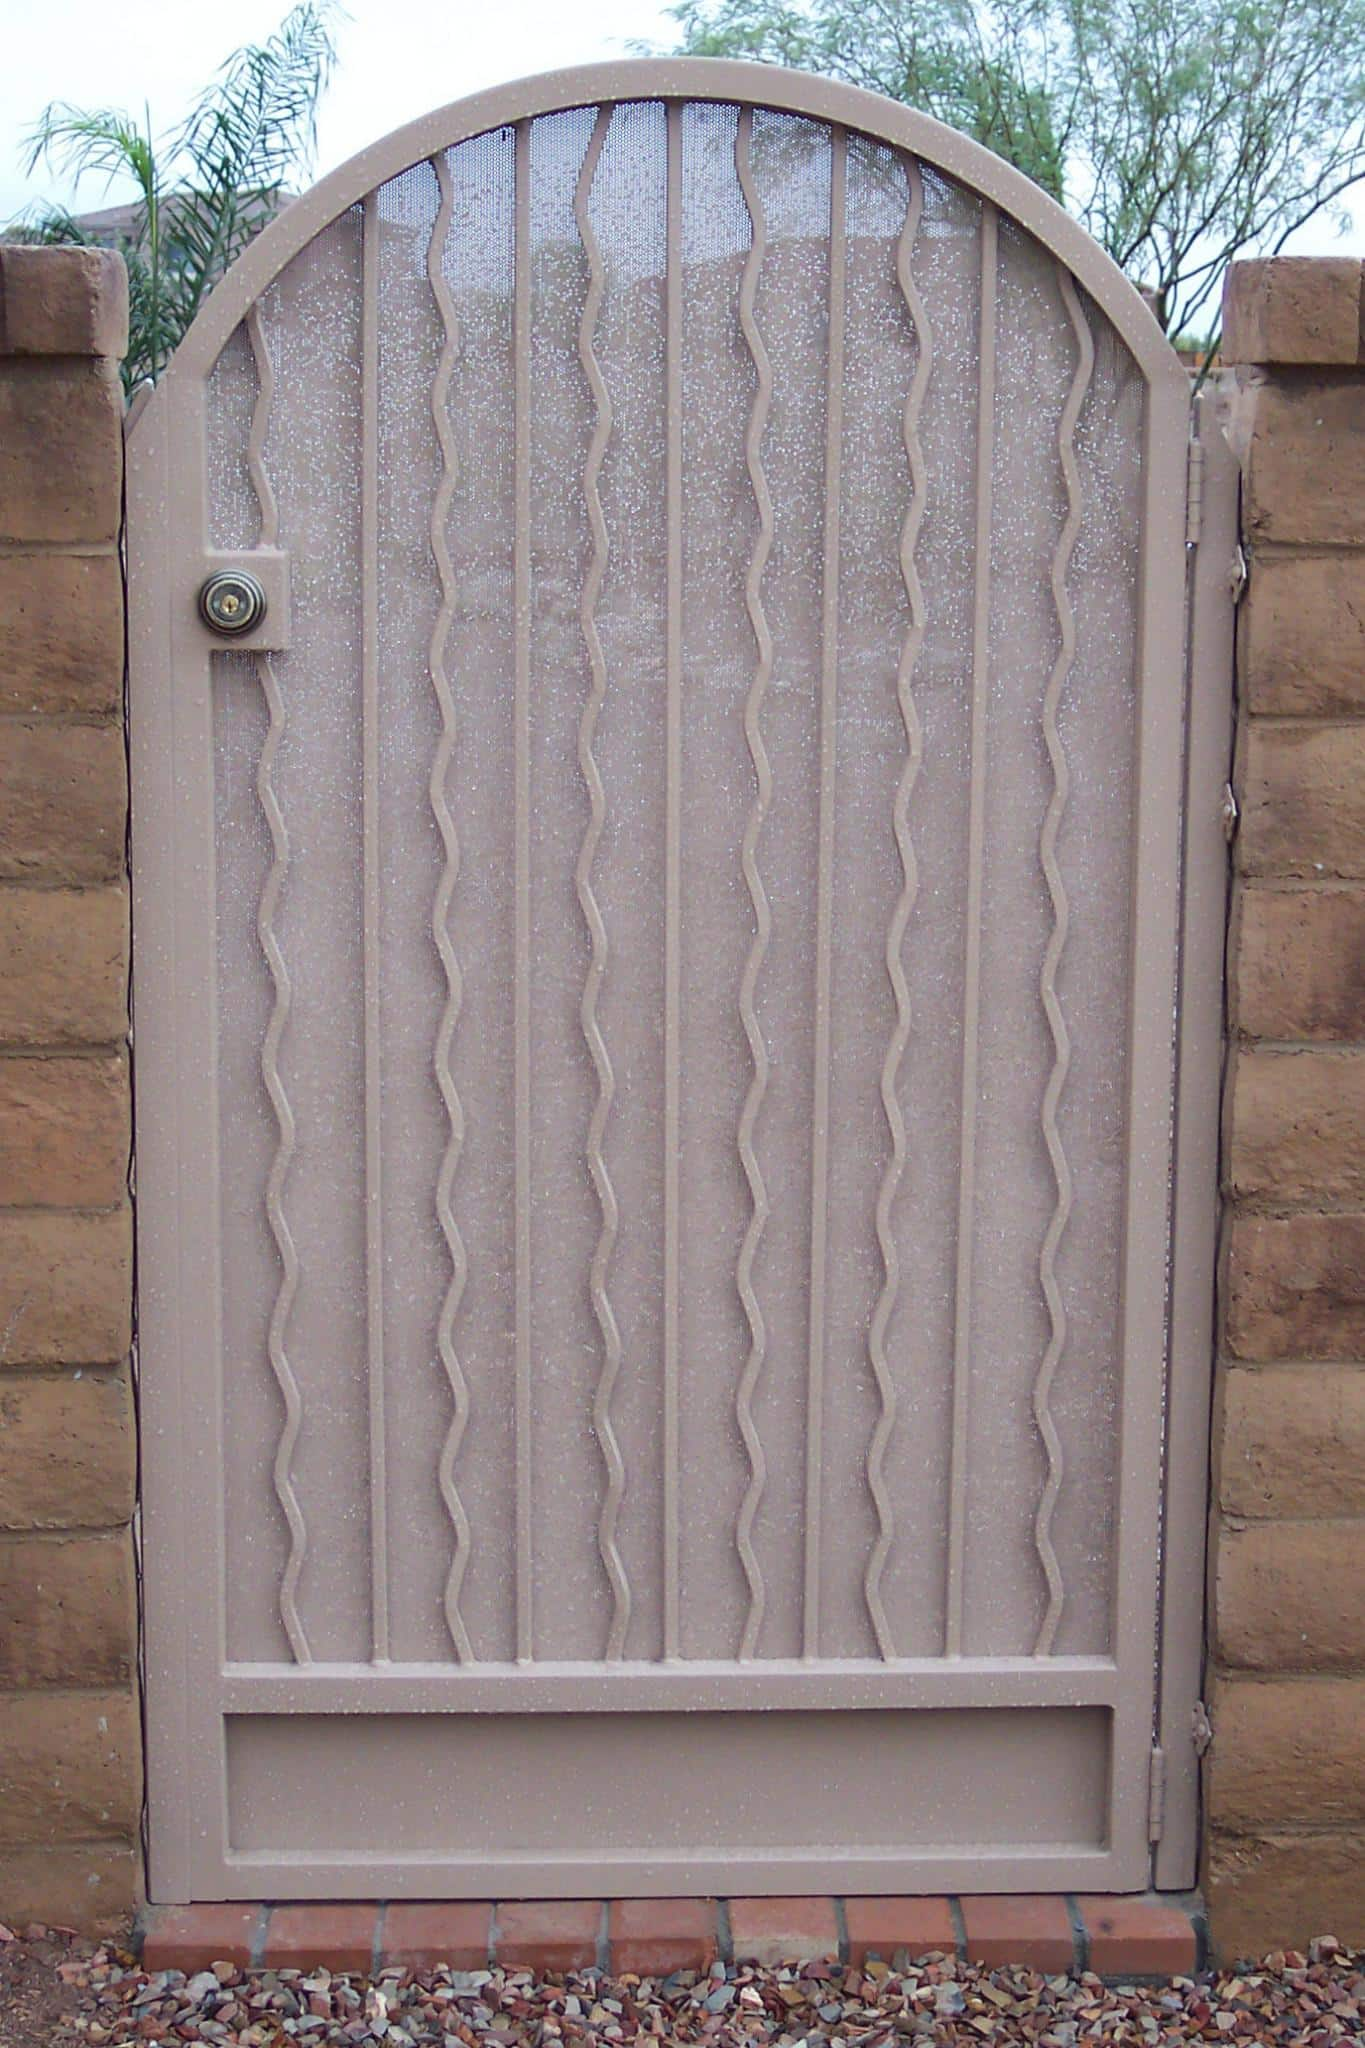 Wrought iron gate wavy pattern with metal backing and white finish IG017